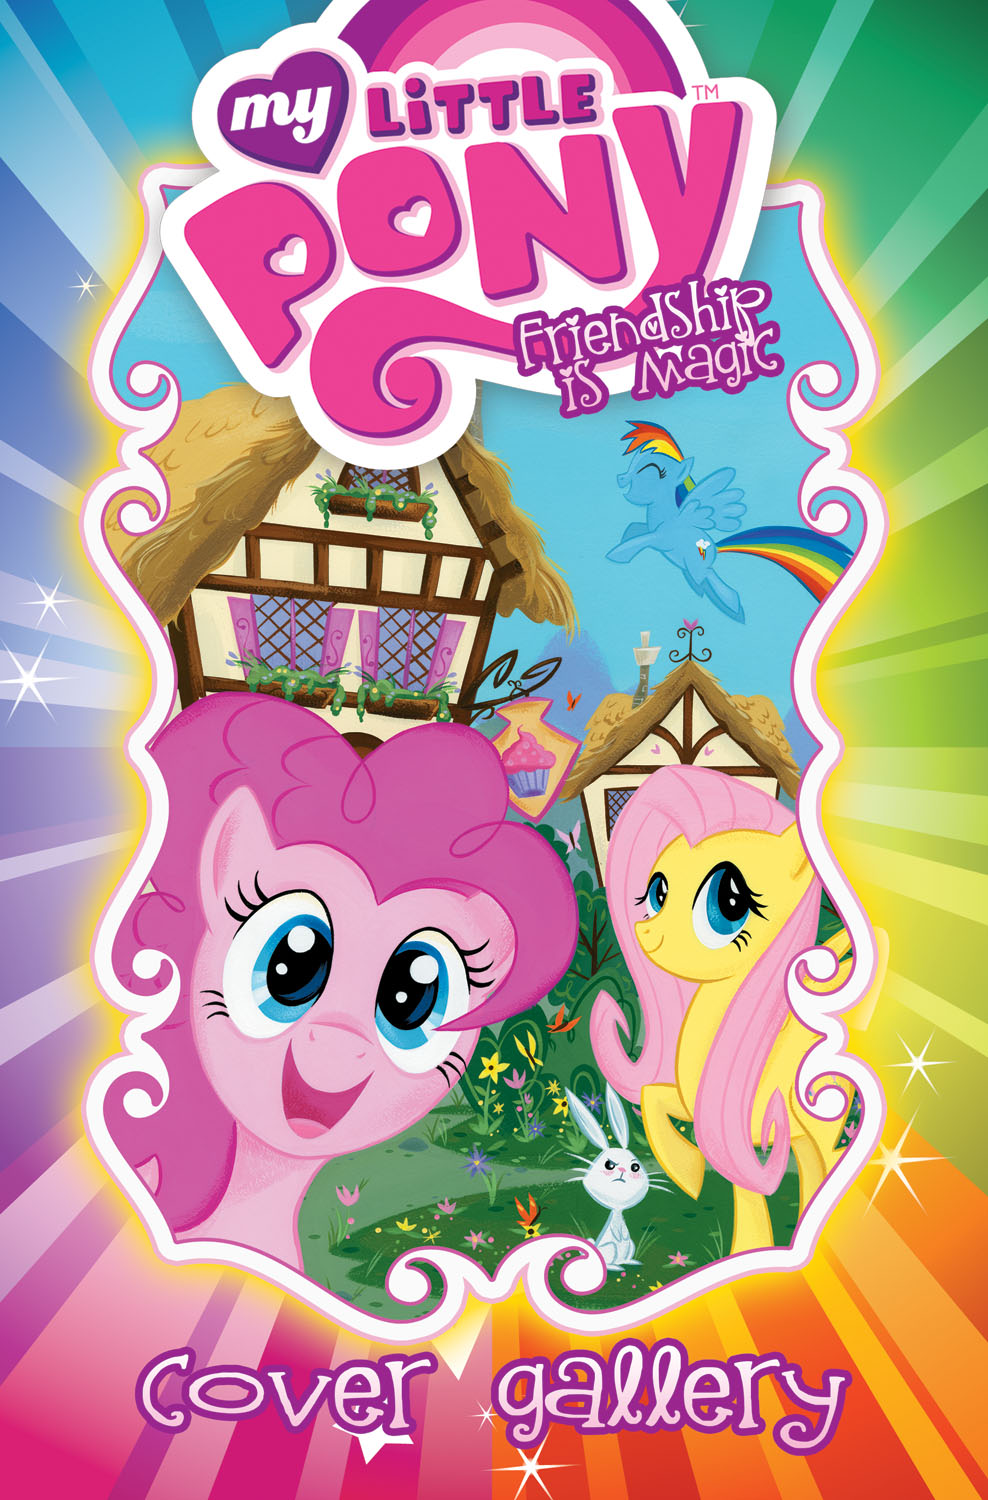 Image my little pony cover gallery my little - My little pony wikia ...